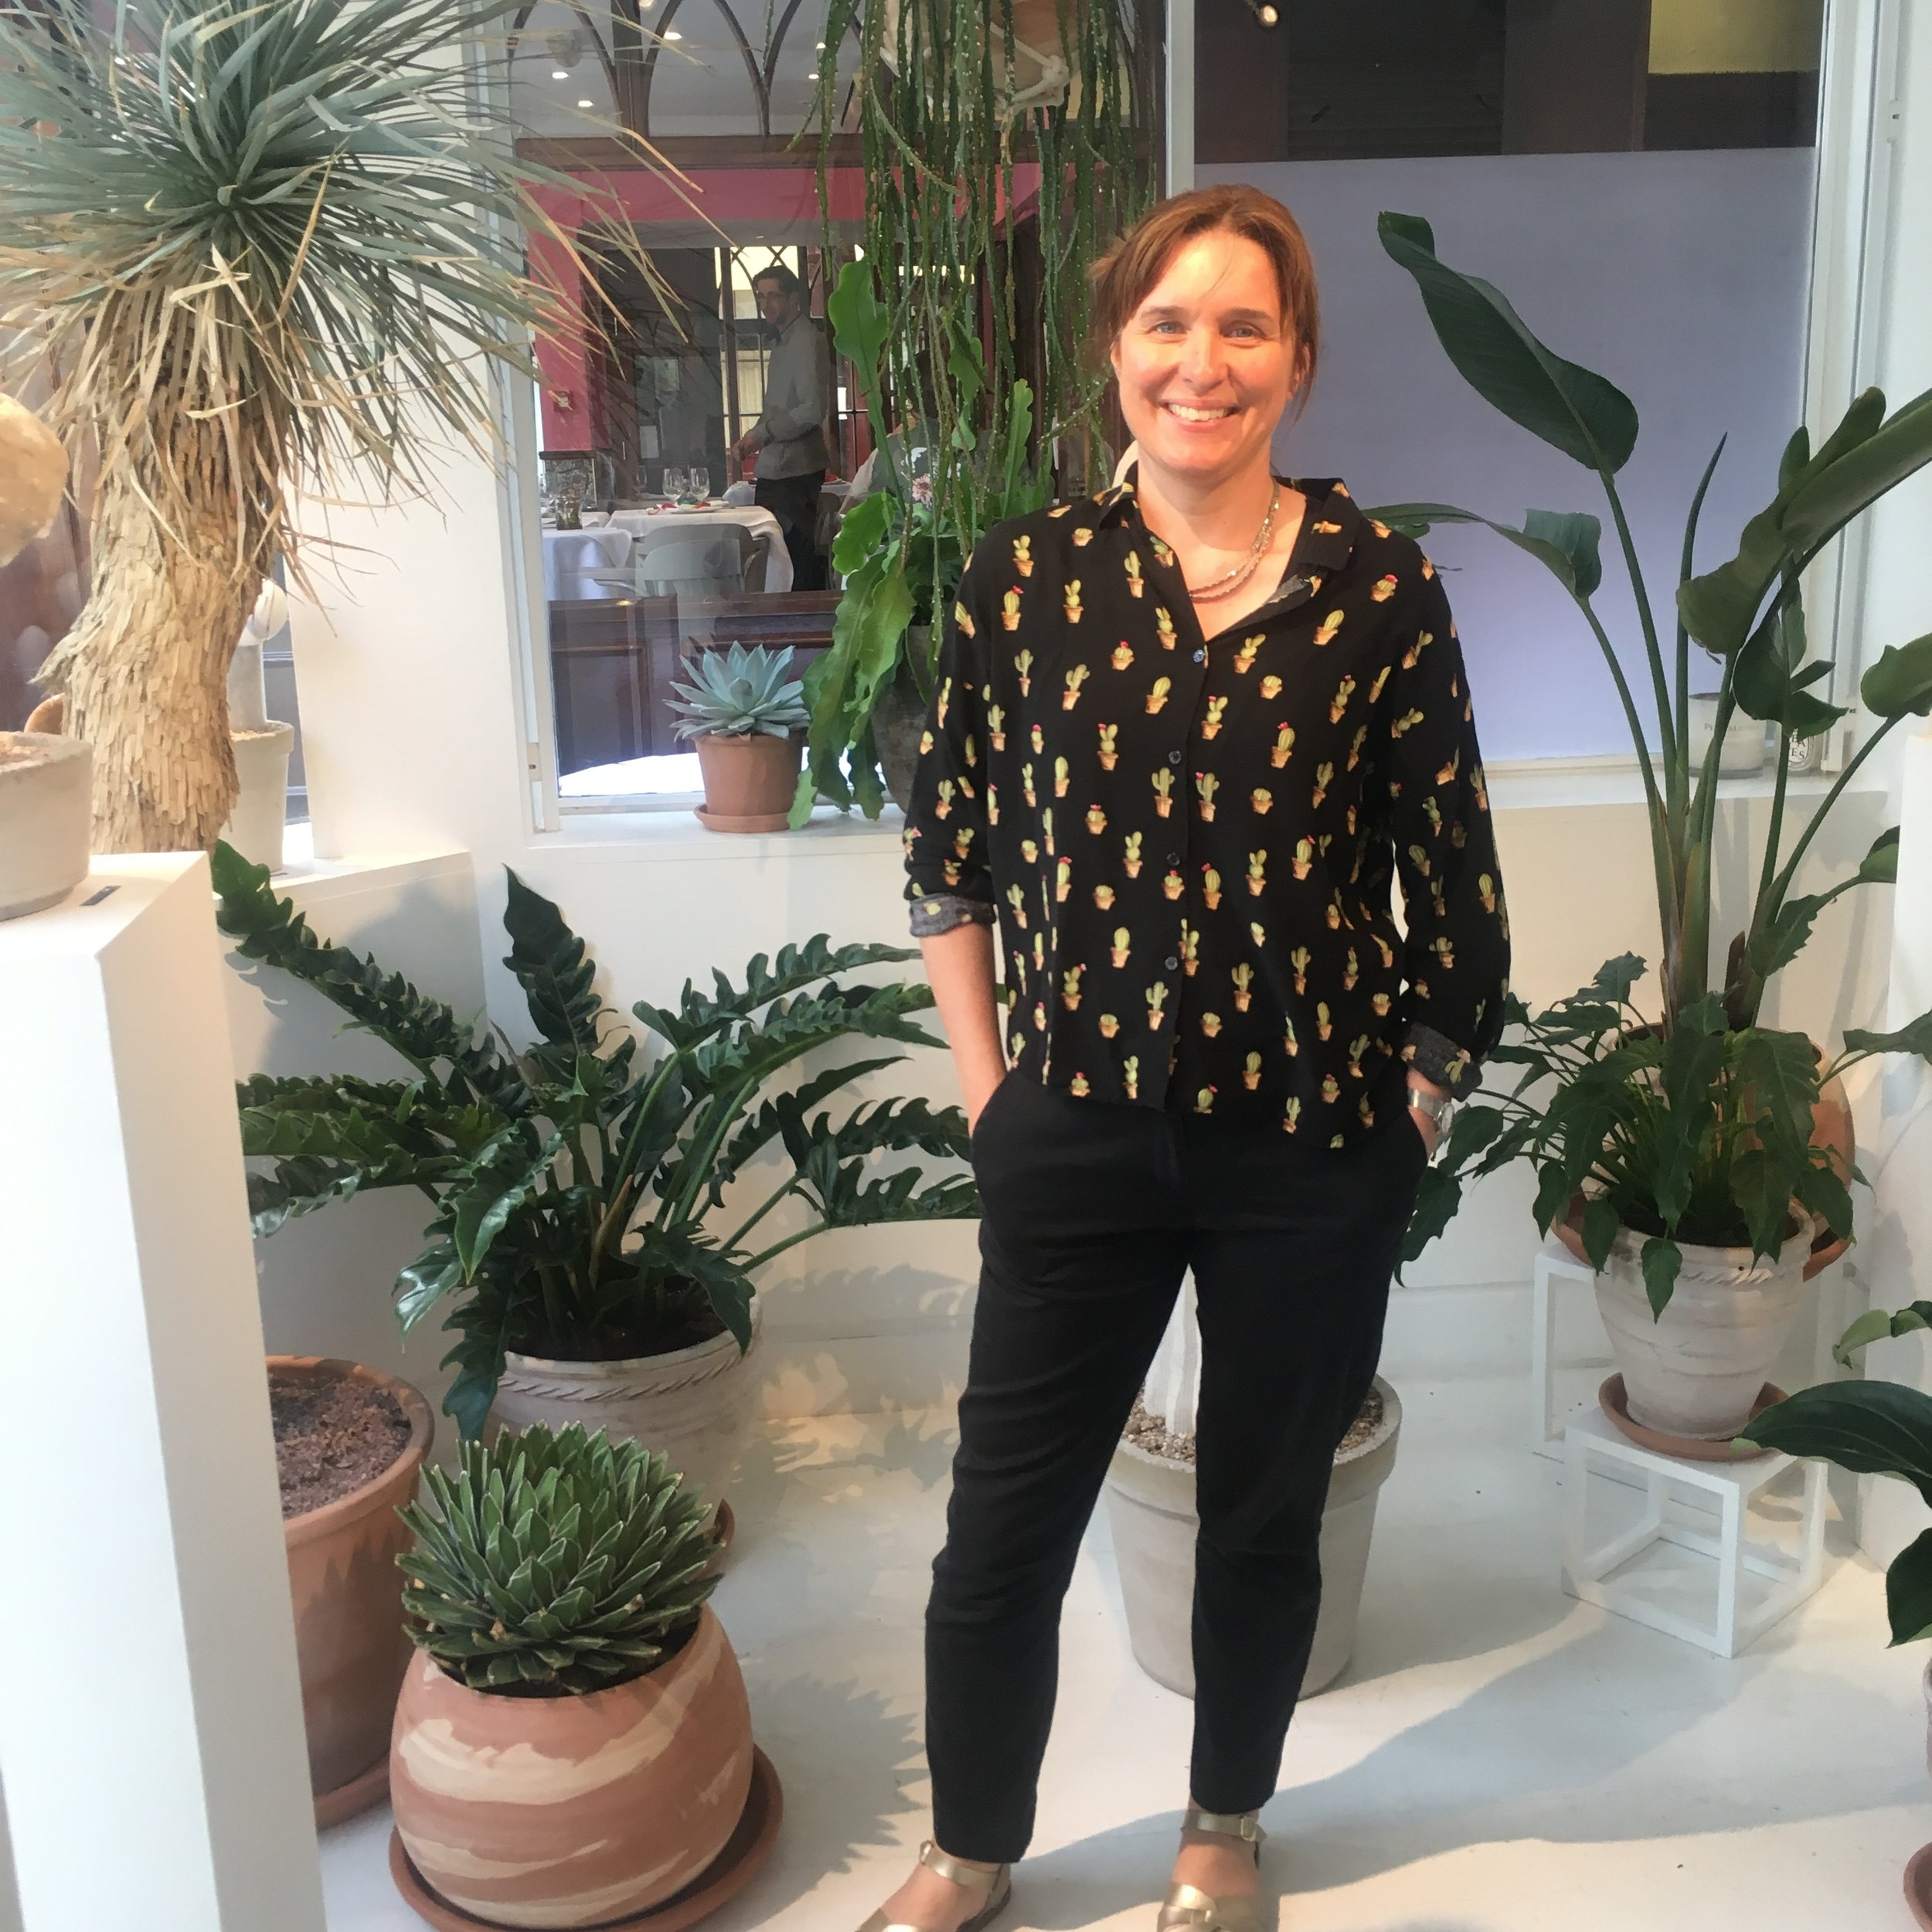 Showing off the spines in my cactus shirt at Ben Russell's Cactus House exhibition. Photograph: Fiona Russell.